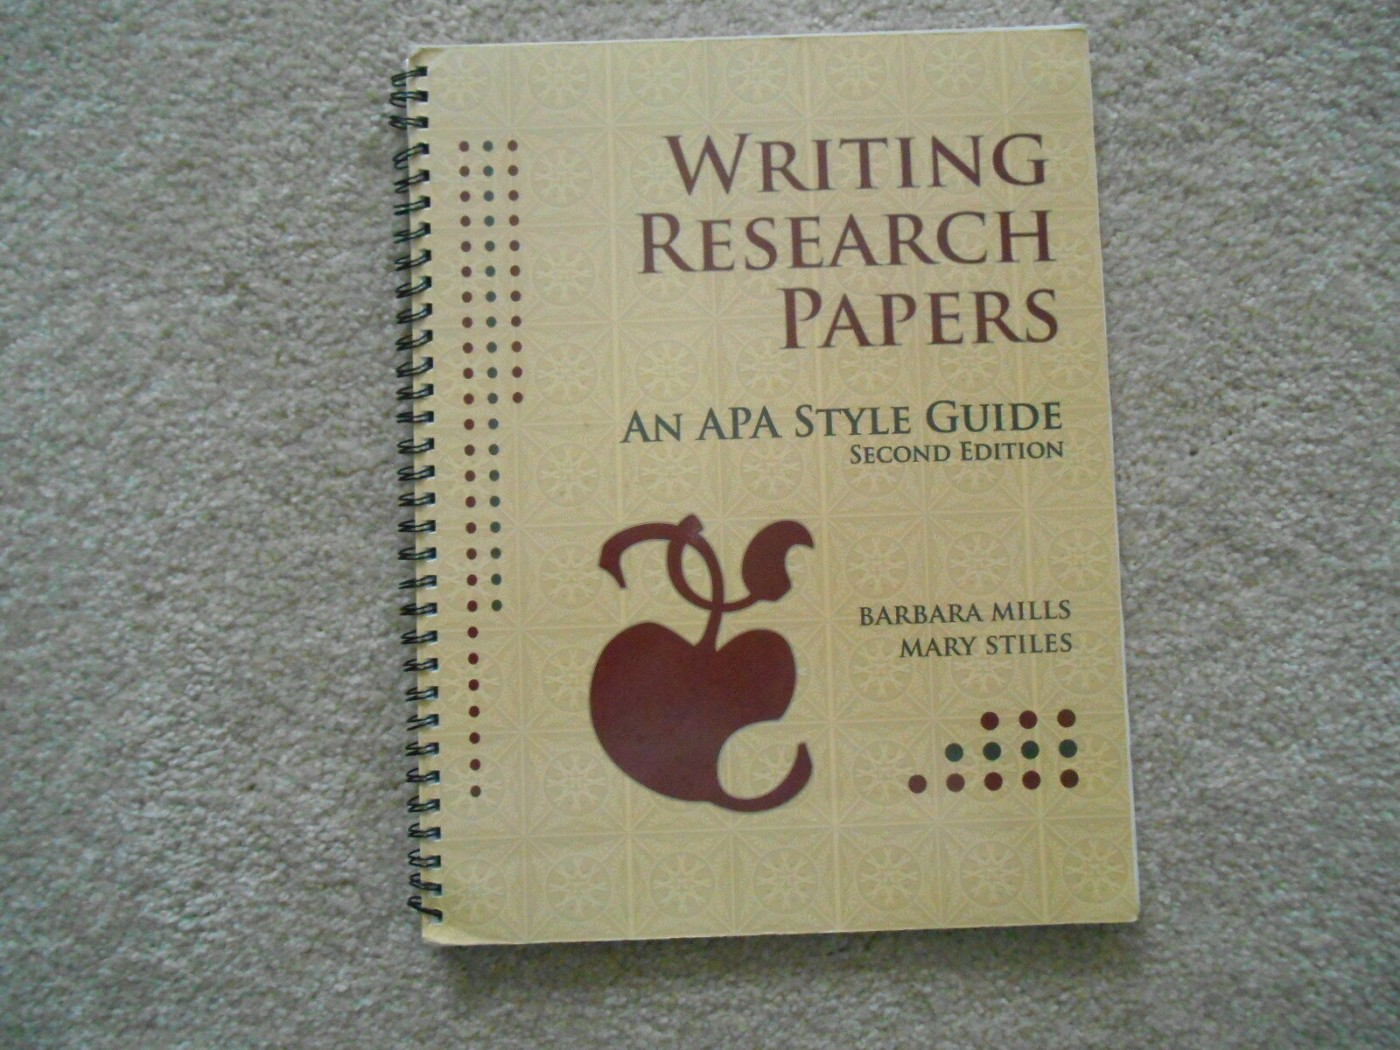 018 Apa Style Guide For Writing Researchs S L1600 Best Research Papers 1400